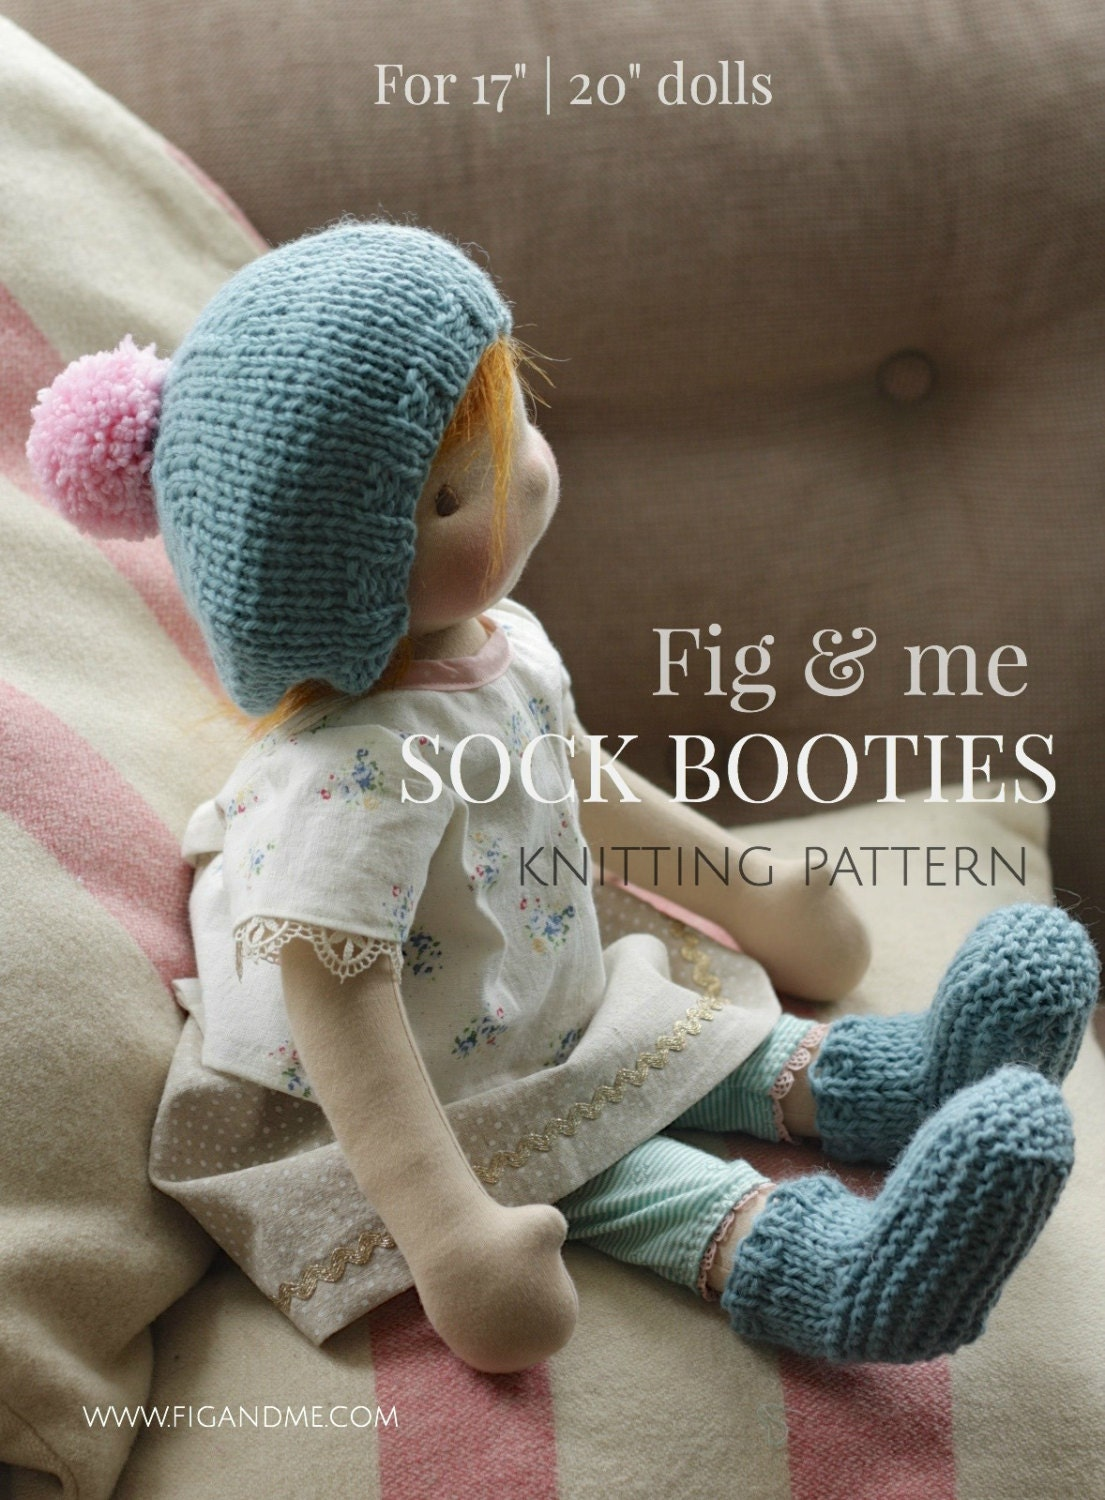 Knitting Patterns For Waldorf Dolls : Doll clothing knitting pattern Waldorf Style Doll clothes